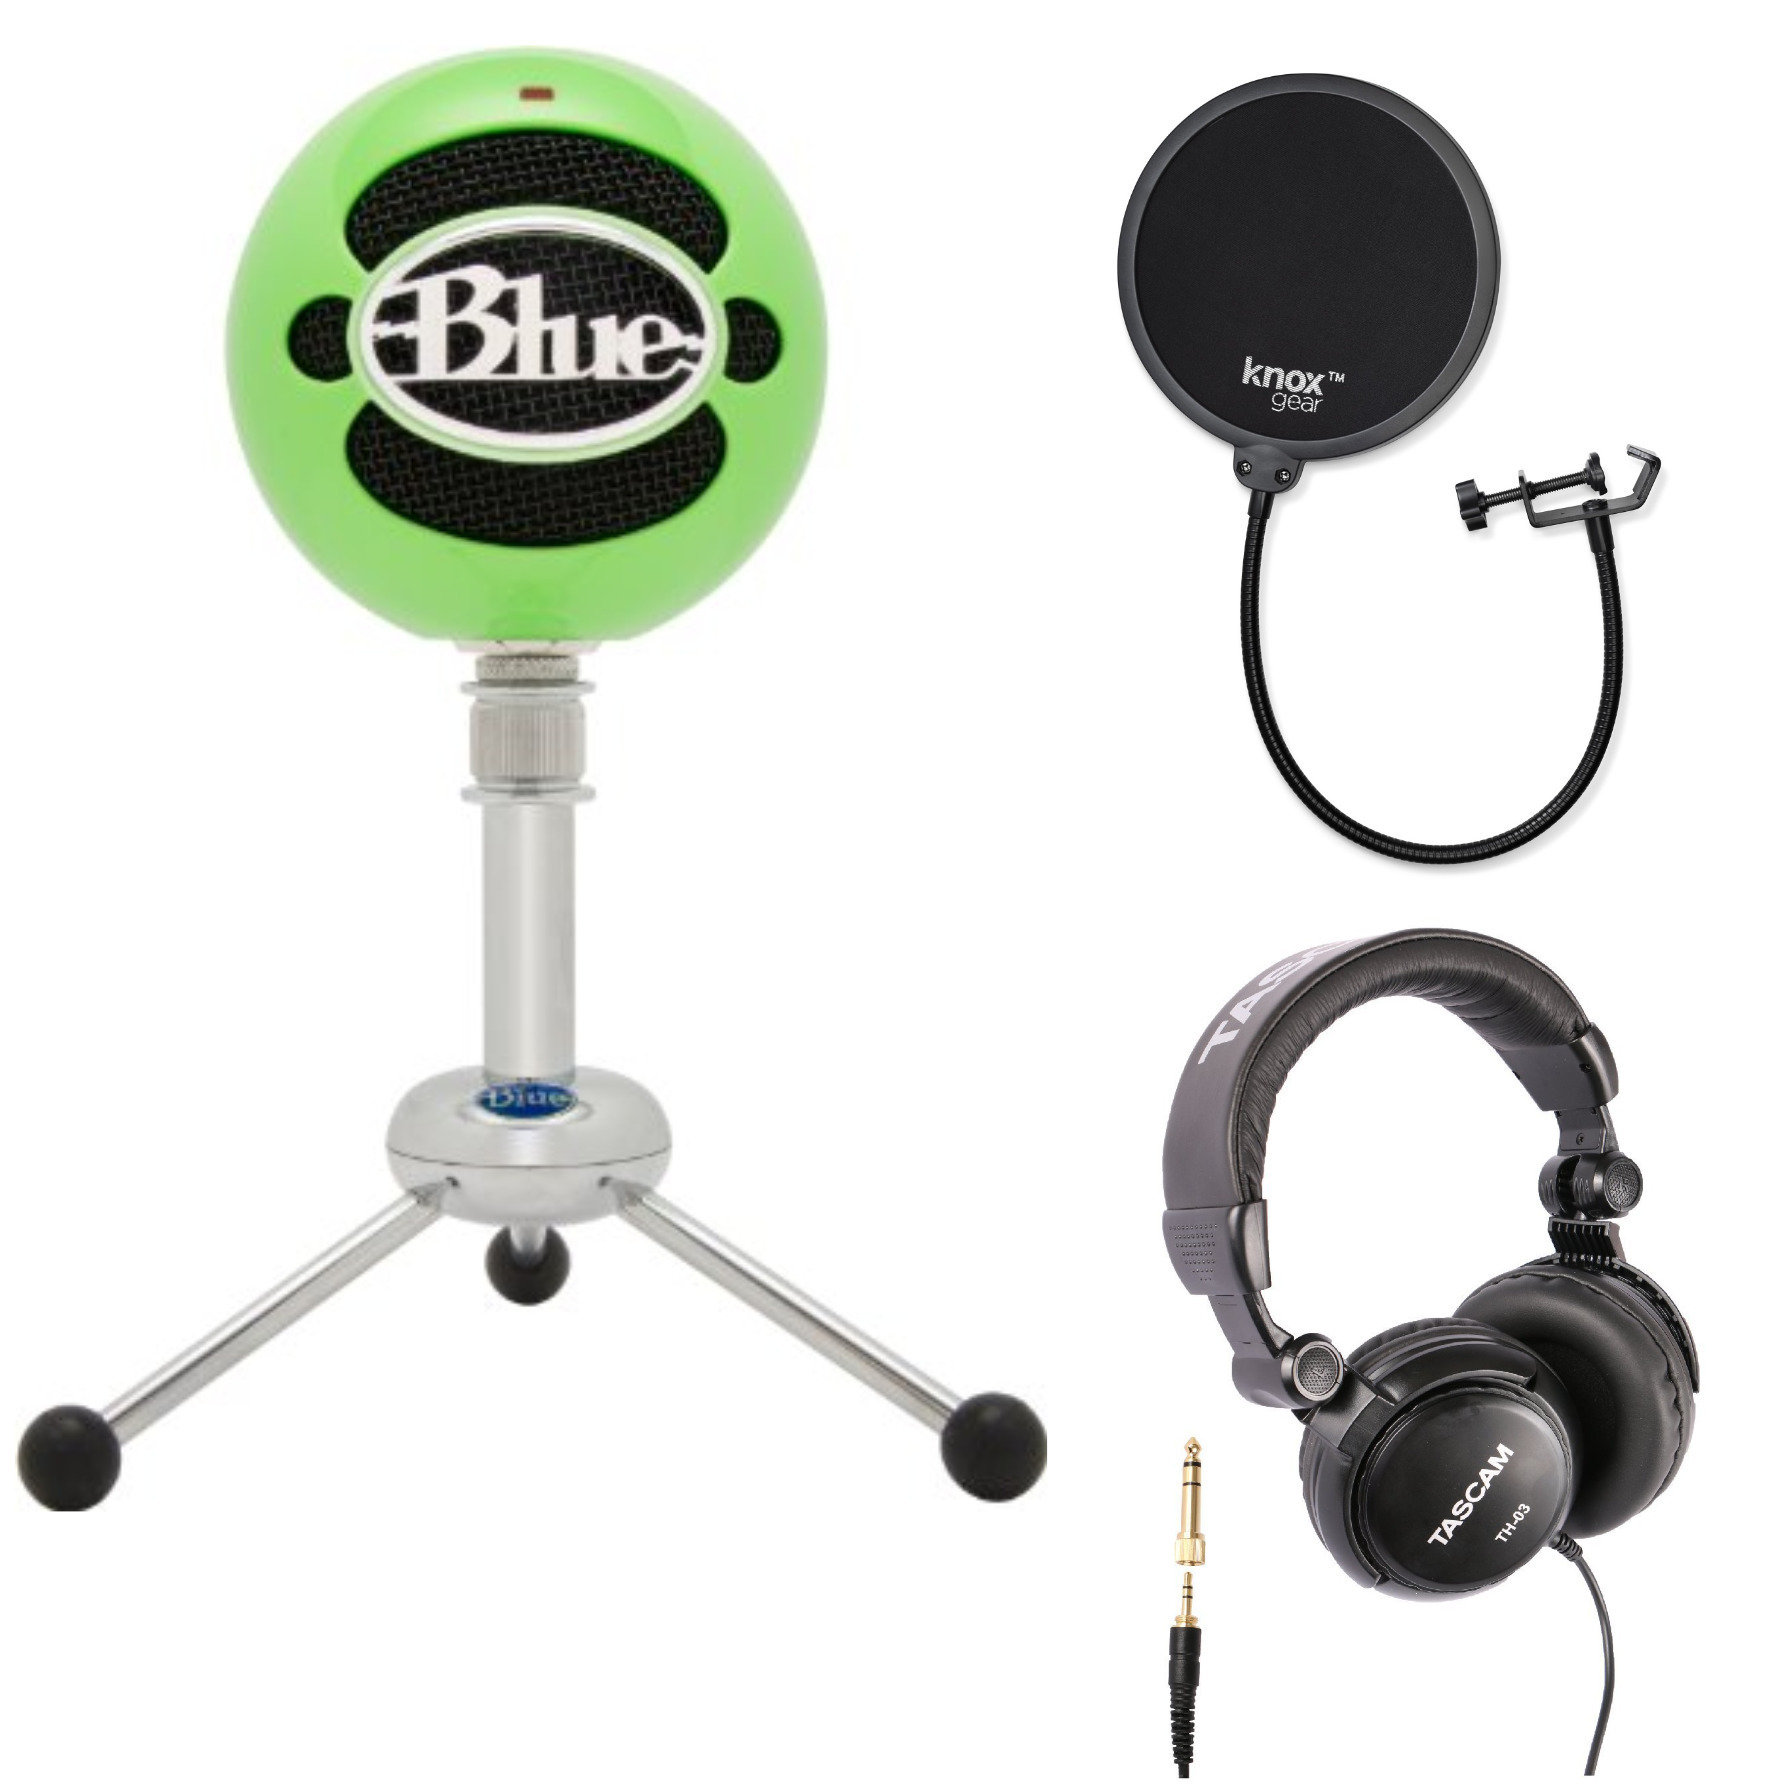 Blue Microphones Snowball-GN USB Mic (Neon Green) with Headphones and Pop Filter